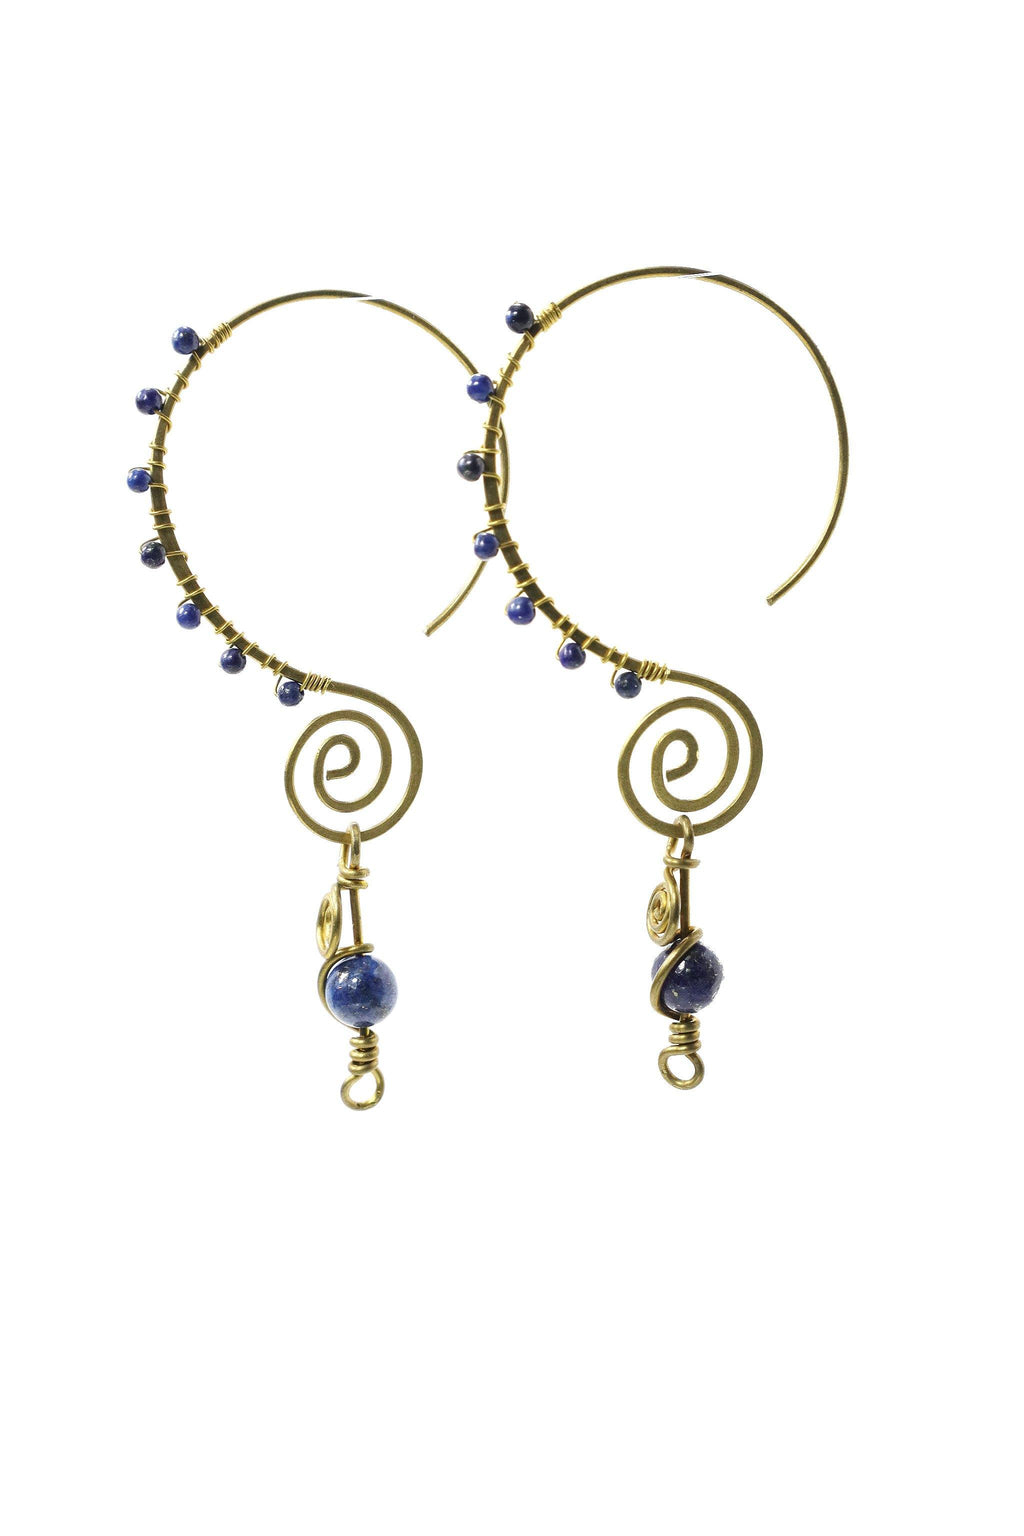 These handmade, brass, swirl earrings feature a fun infinity style hoop, wire wrapped with small gemstones, and finished with a larger lapis lazuli gemstone as a focal point. This product is handmade and fairtrade in Thailand.